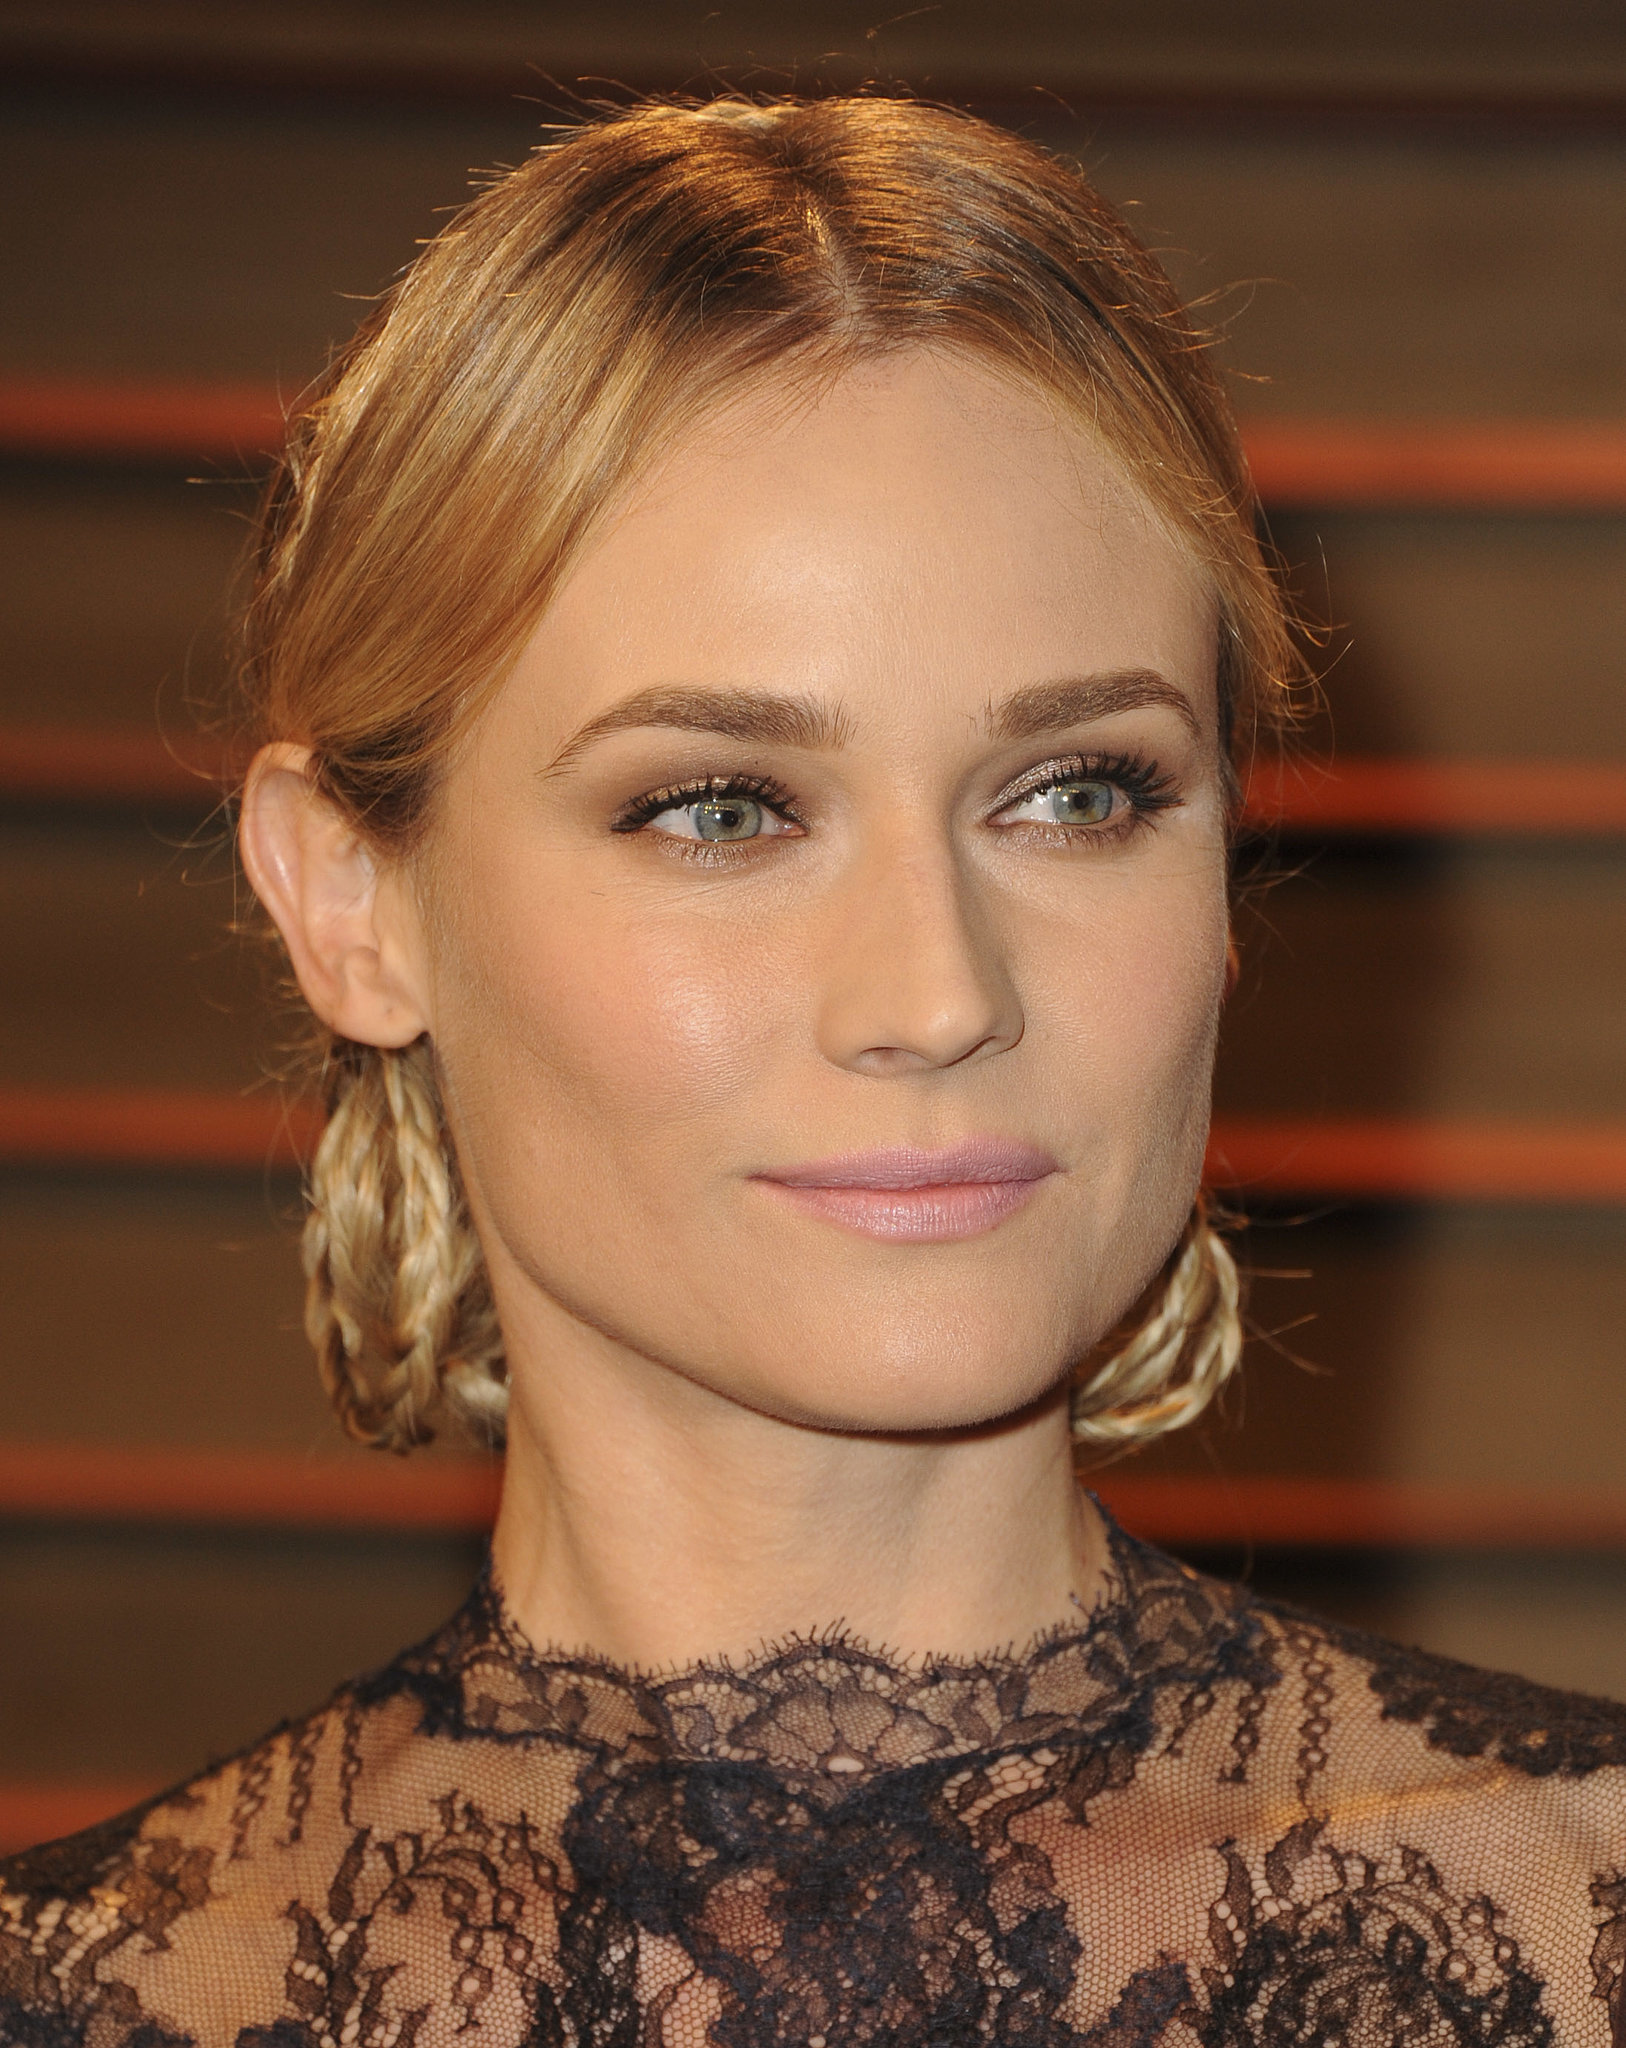 Diane Kruger's Braided 'Do From the Front